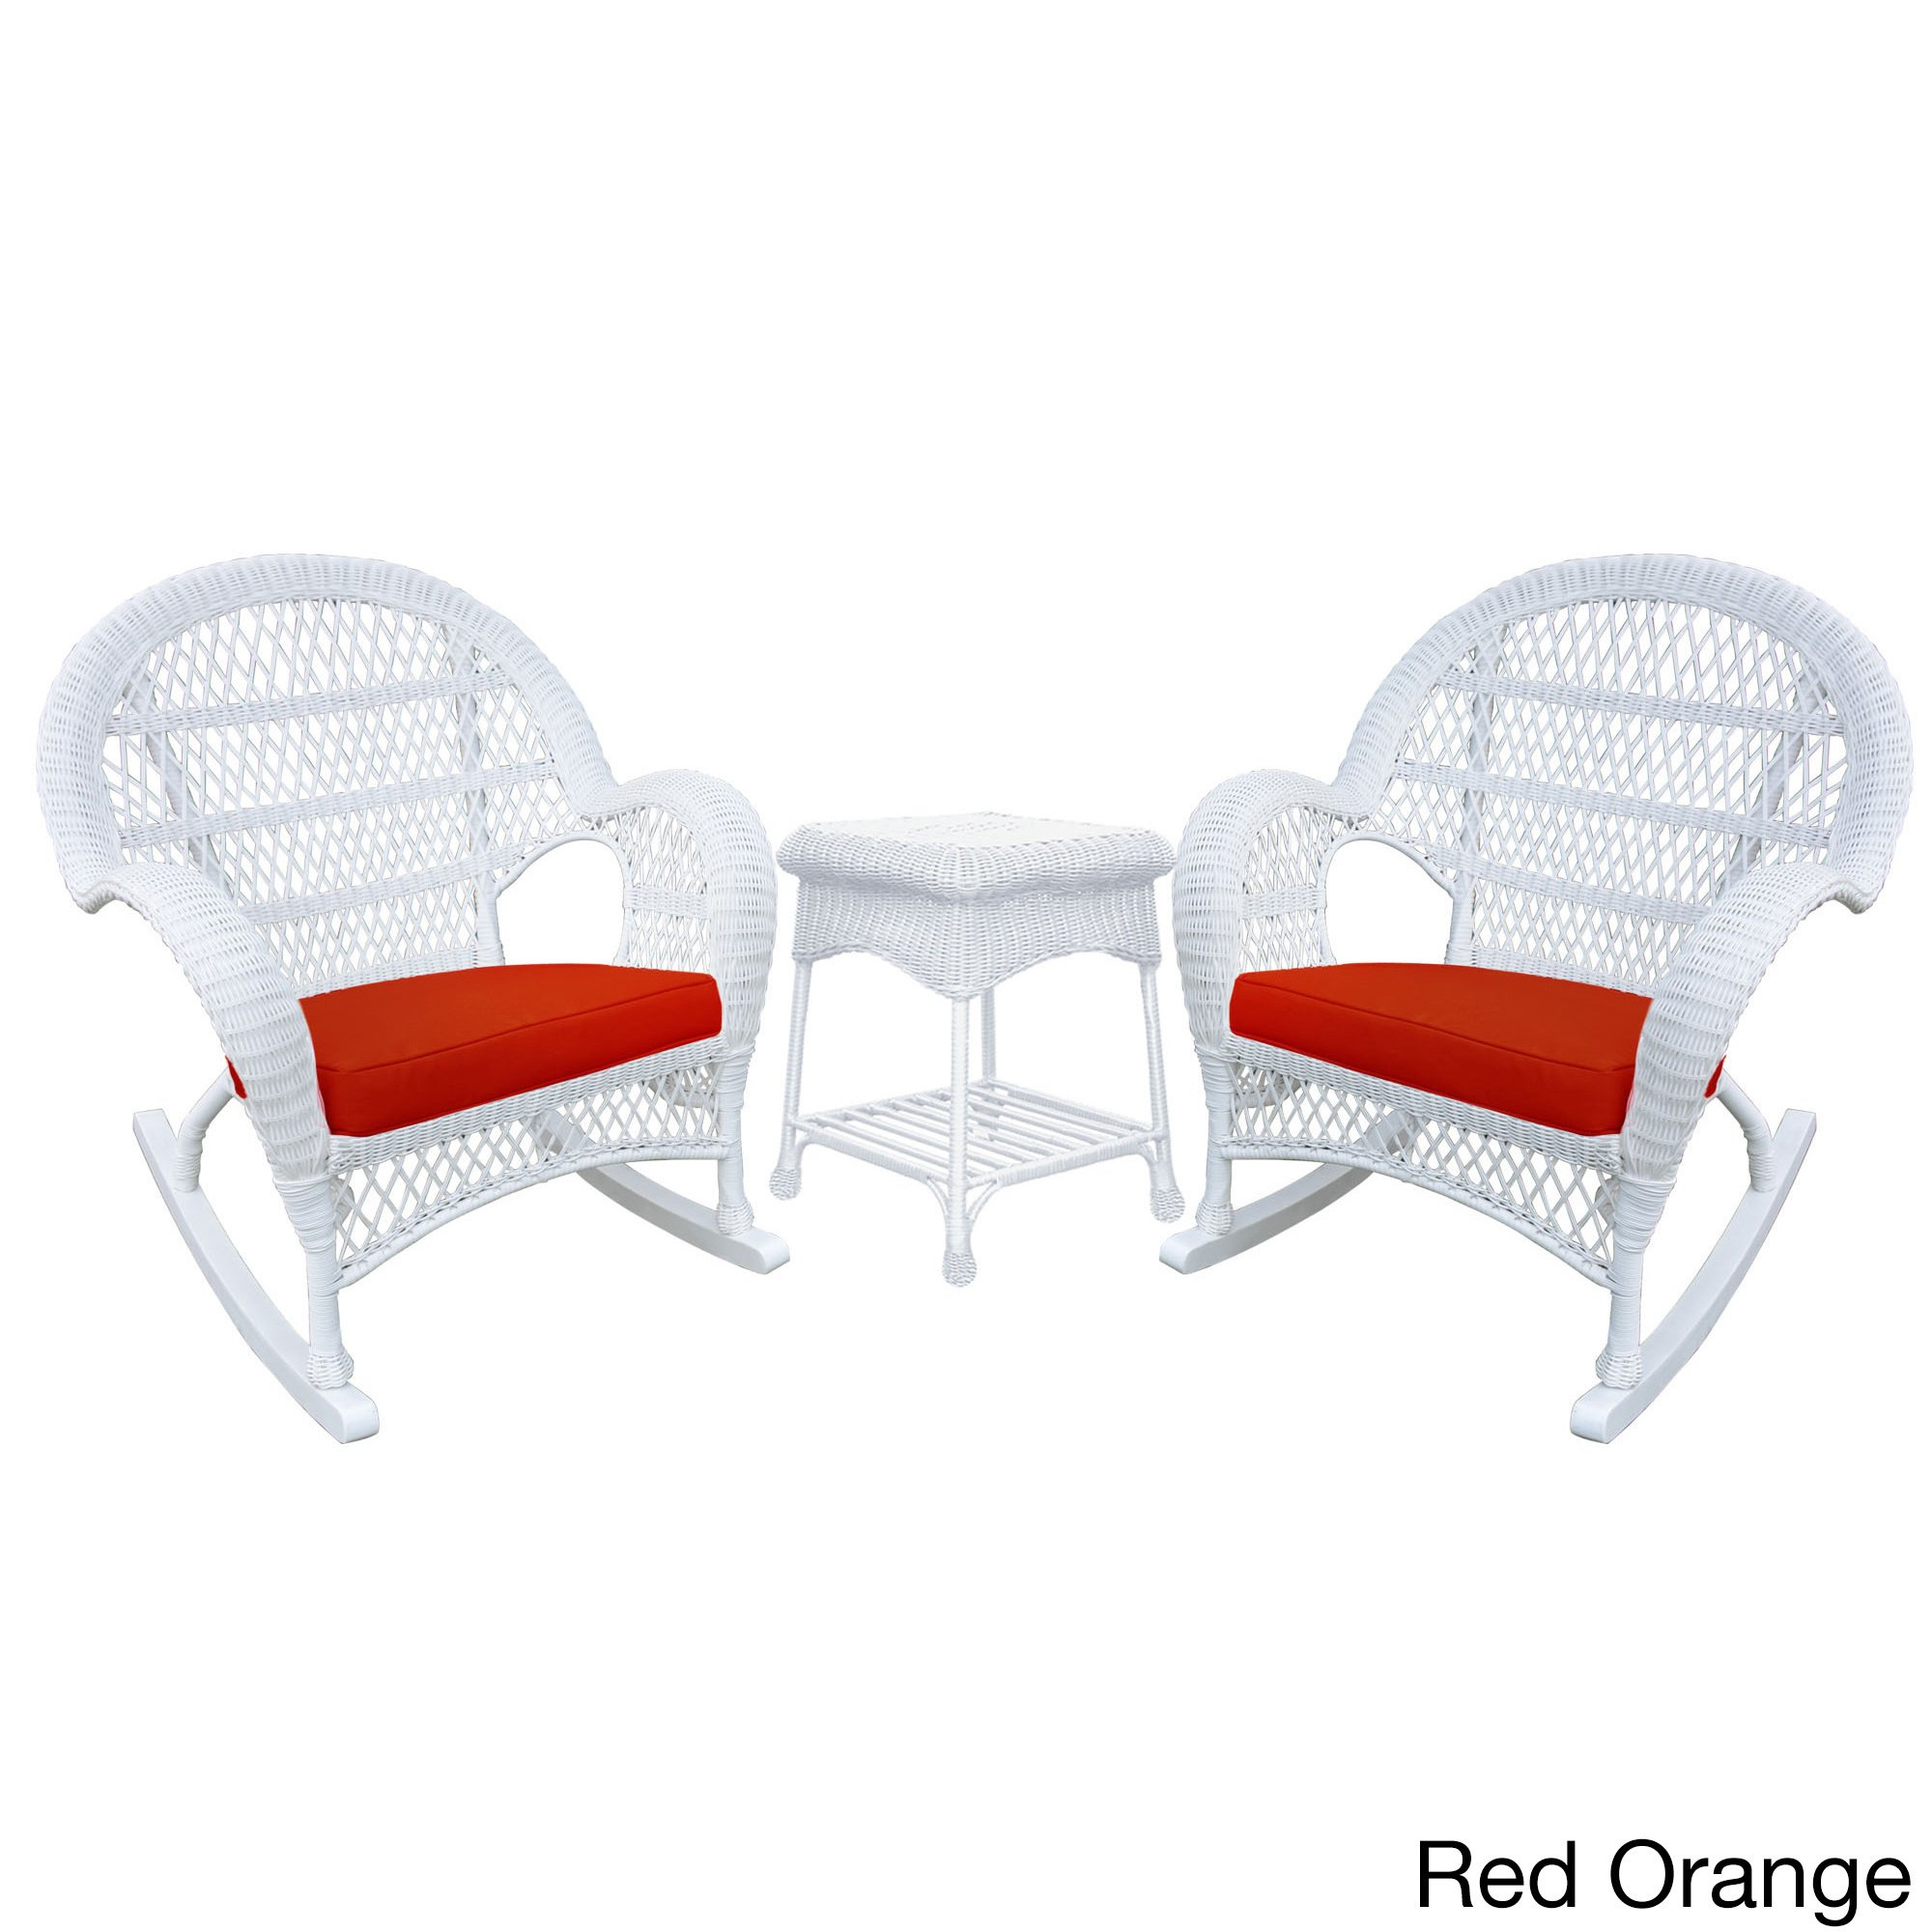 Santa Maria White Rocker Wicker Chair And End Table Set – Free Inside Mari Swivel Glider Recliners (Image 15 of 20)